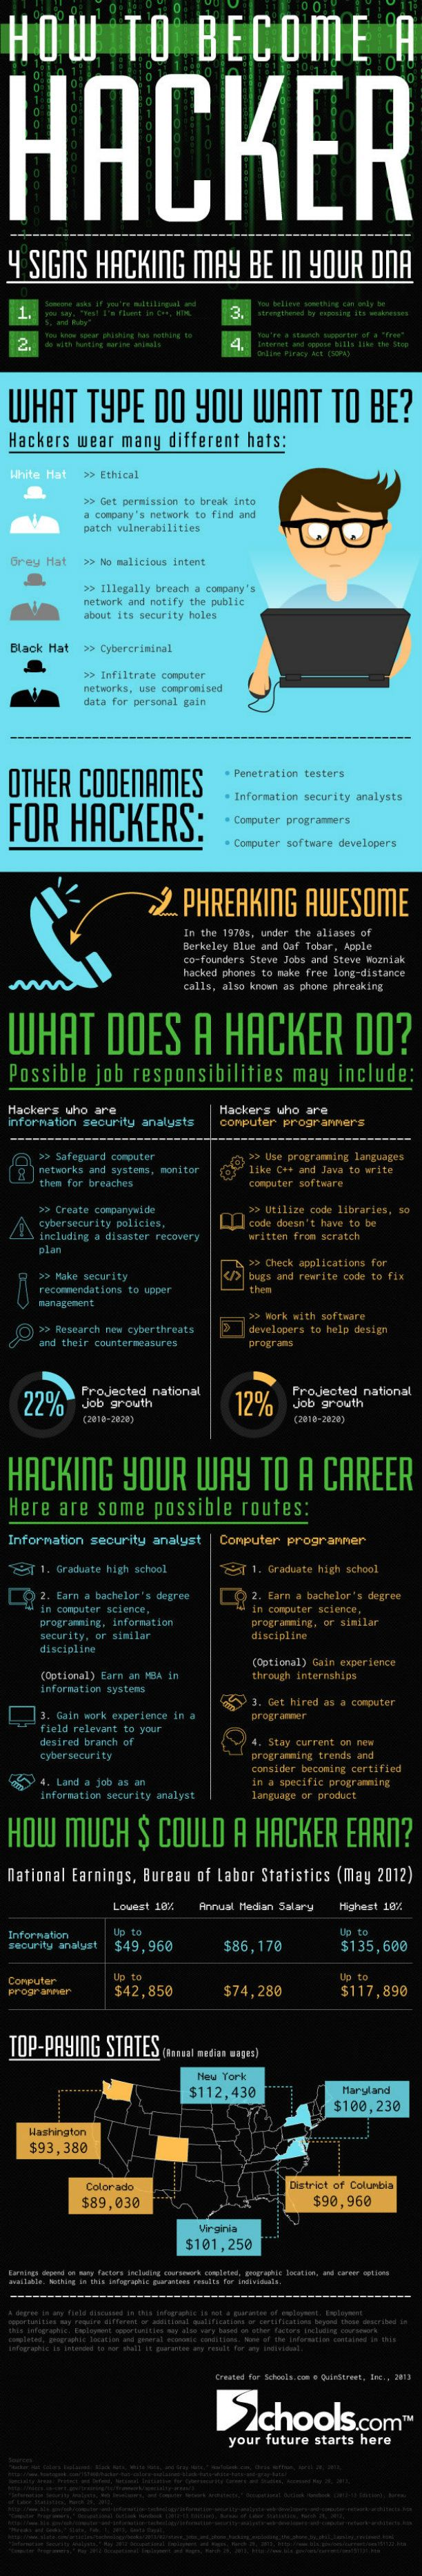 how to be a hacker infographic hacker facts